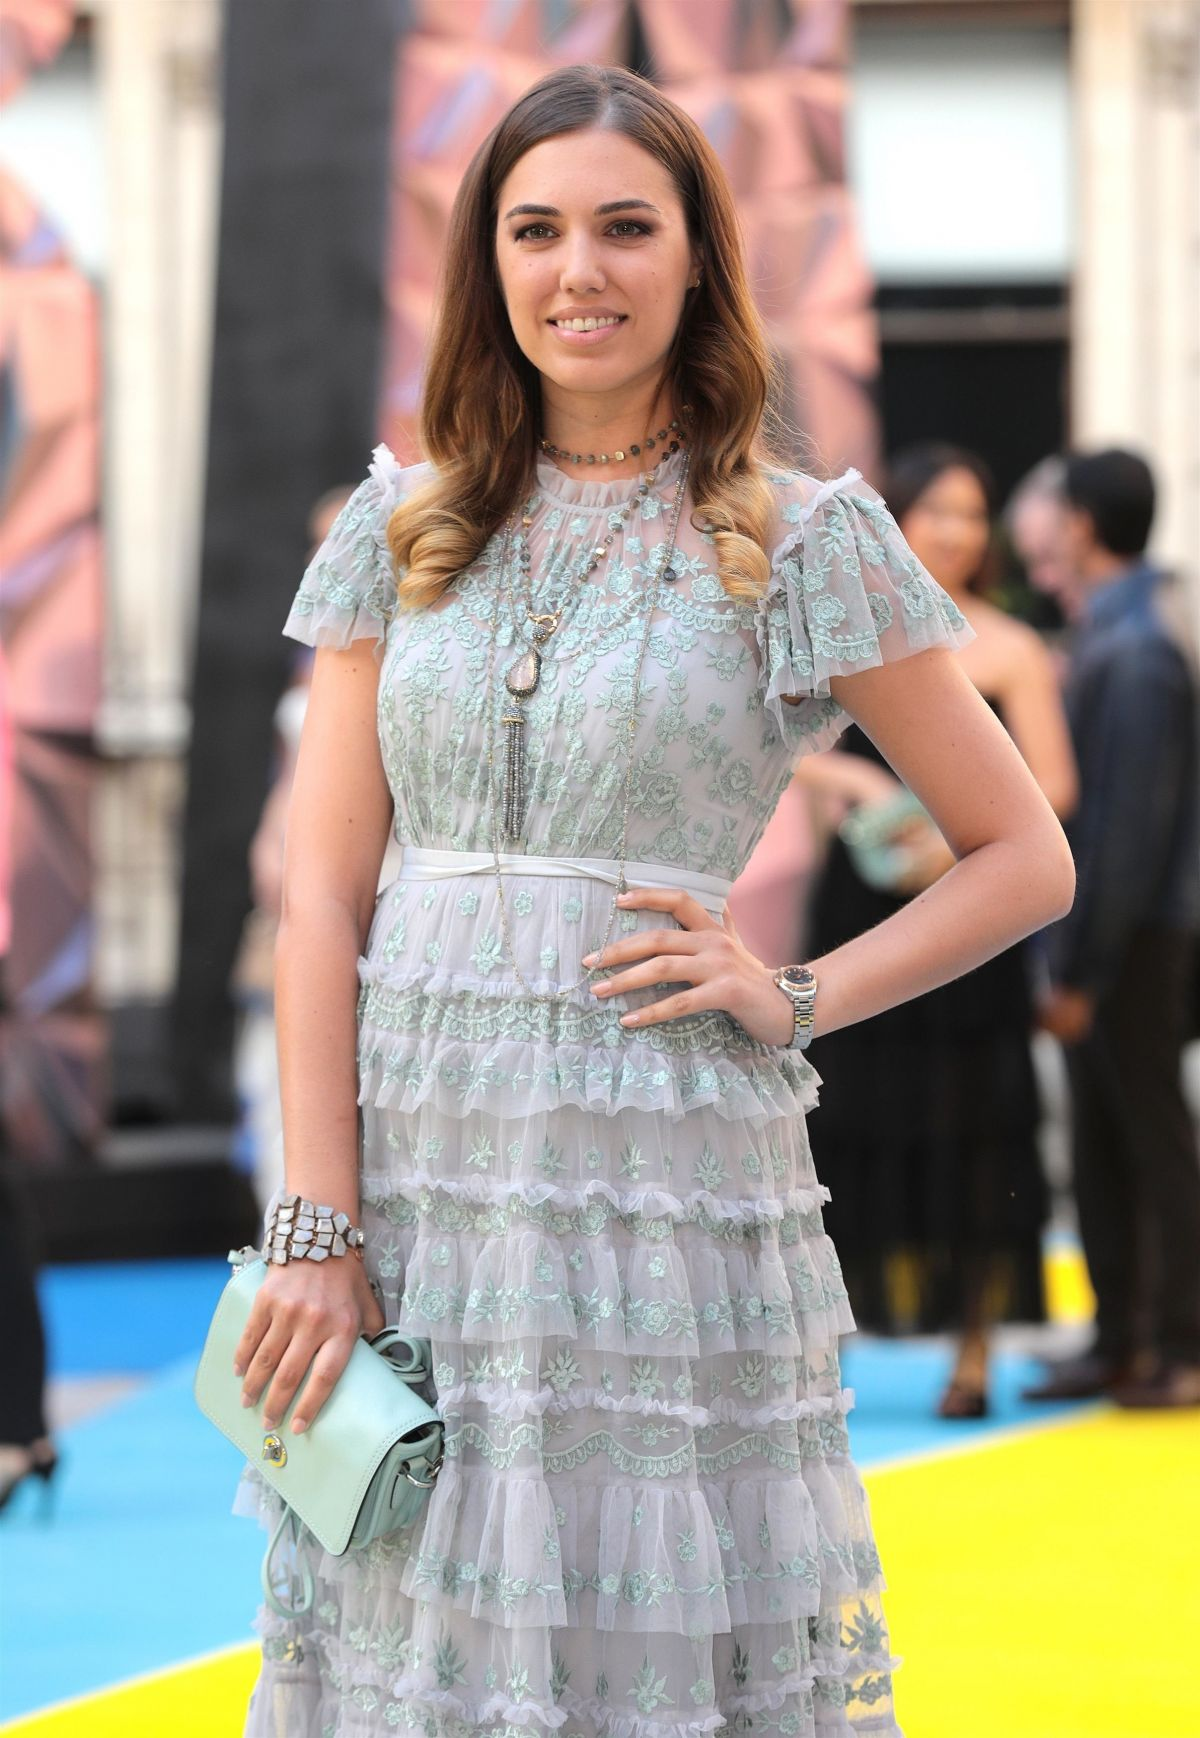 Catherine tyldesley lorraine tv show in london images